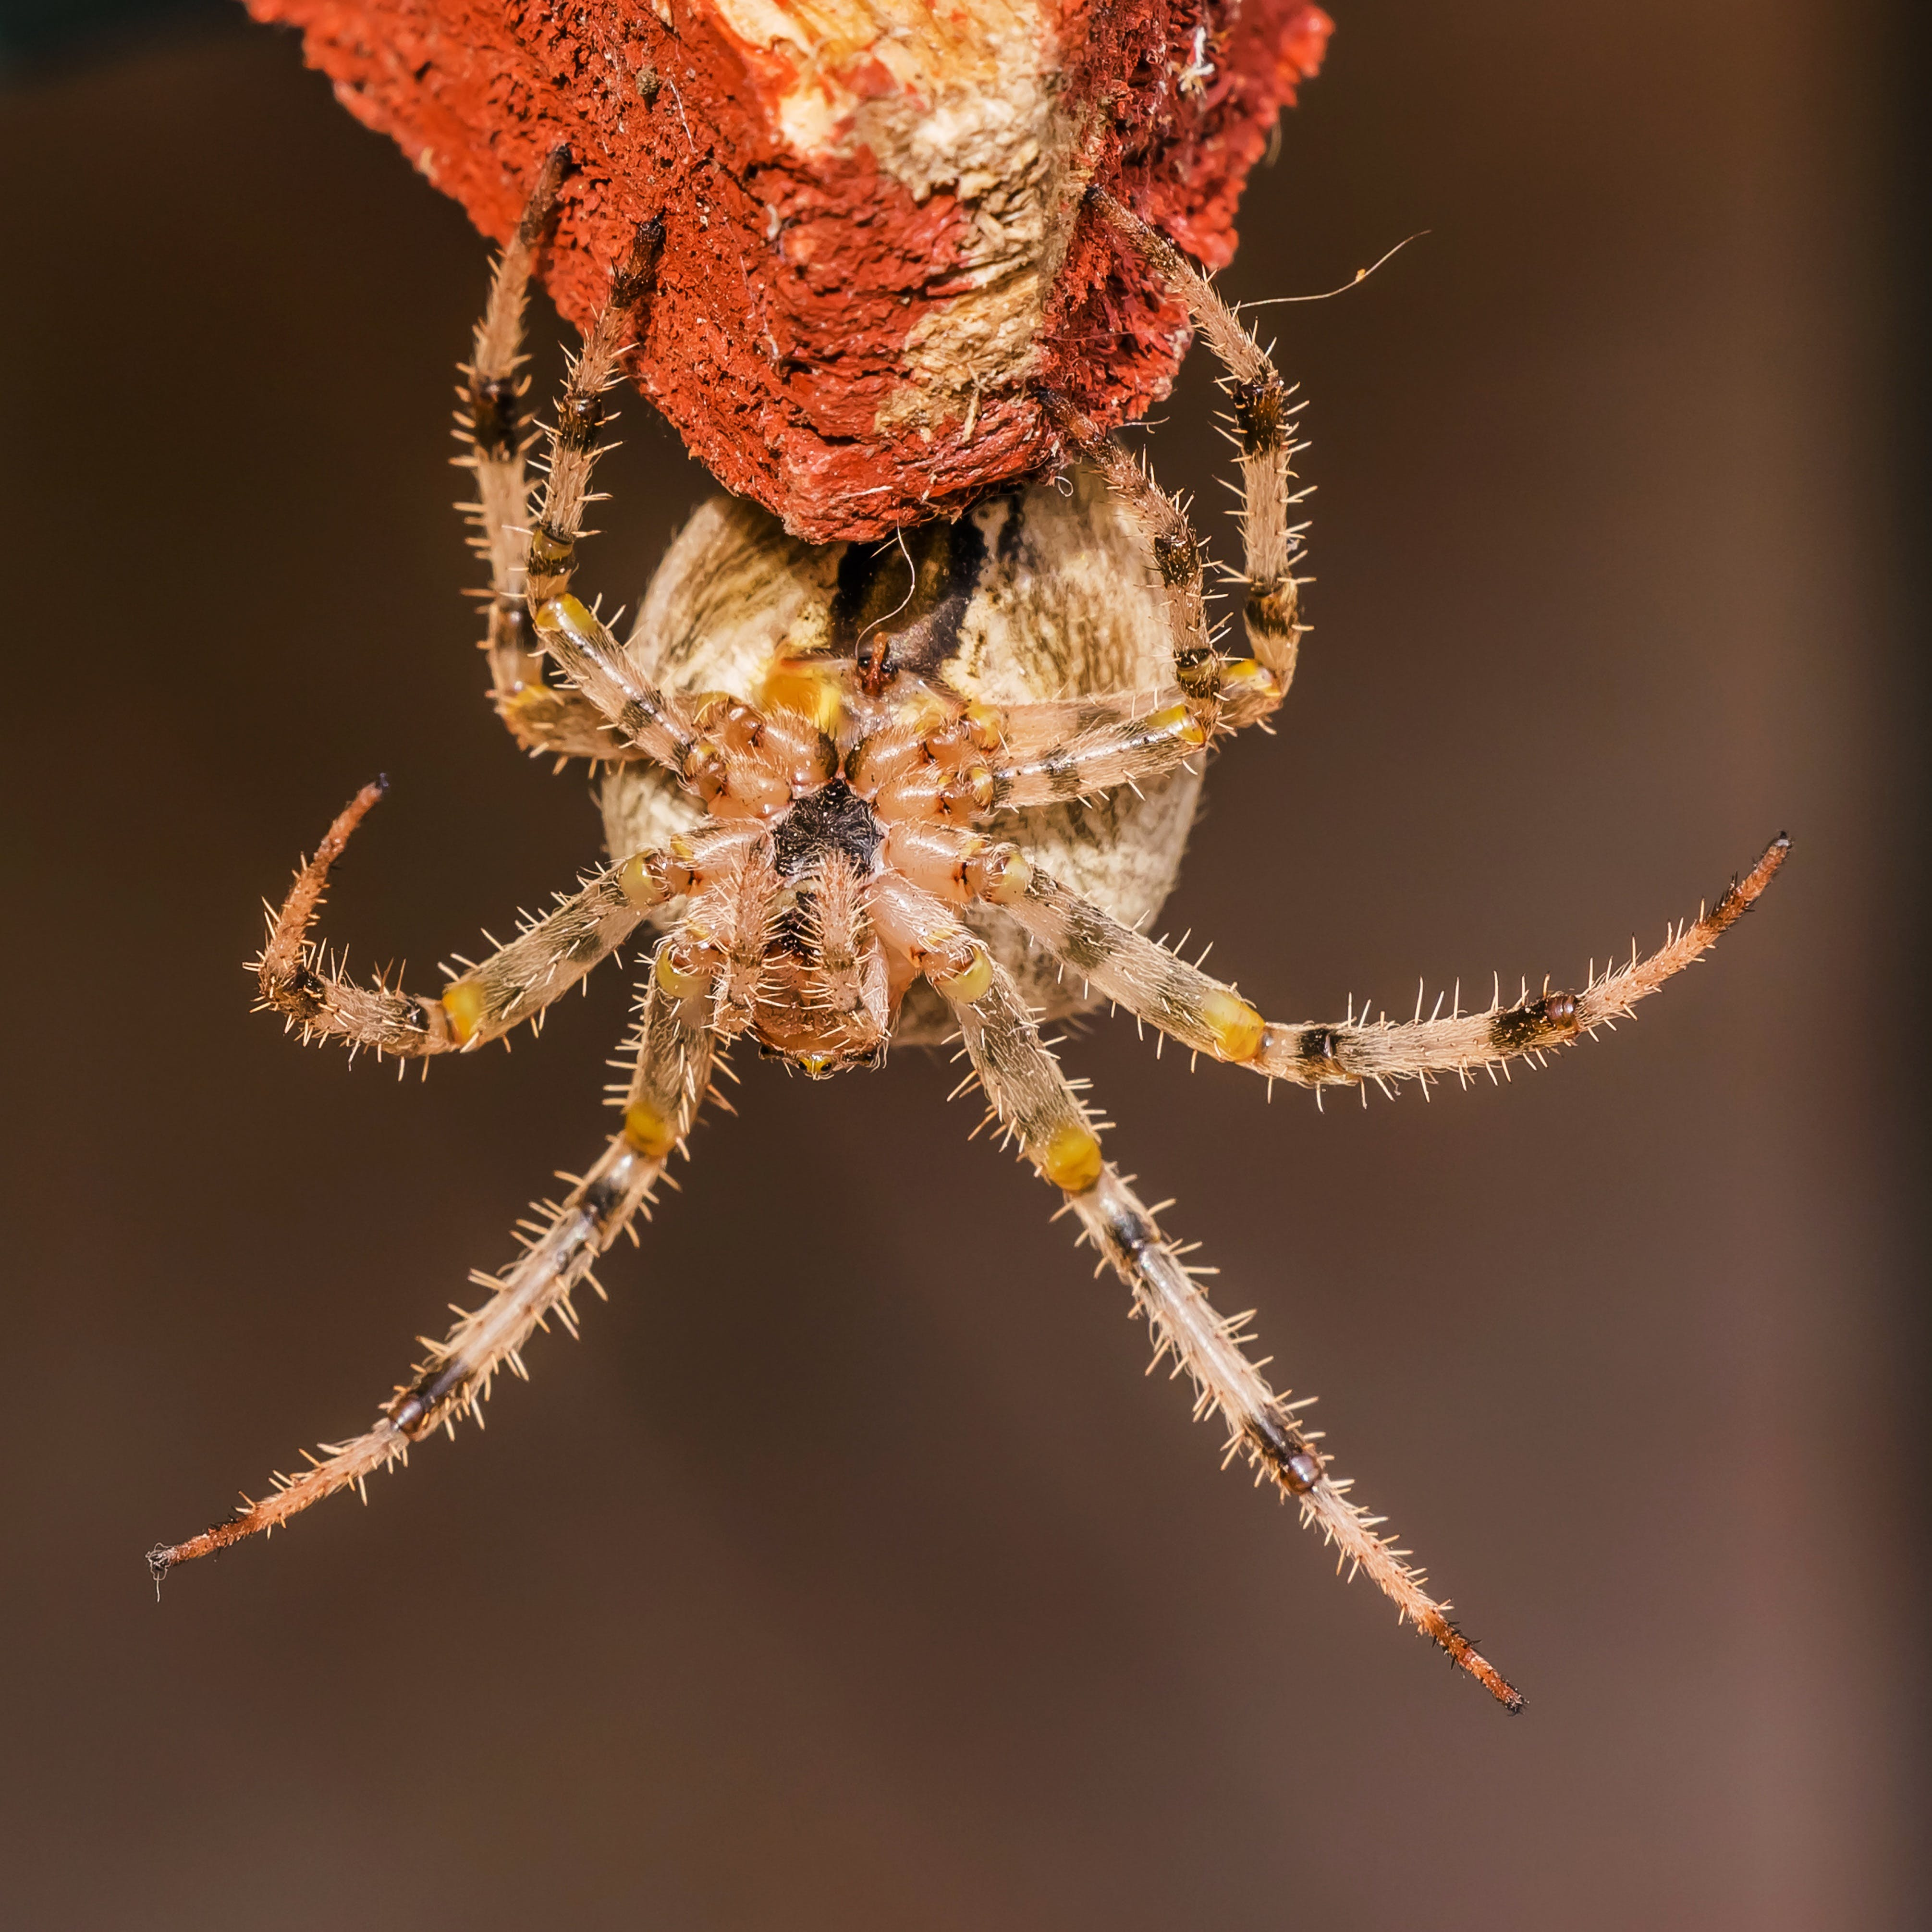 Brown and Yellow Spider